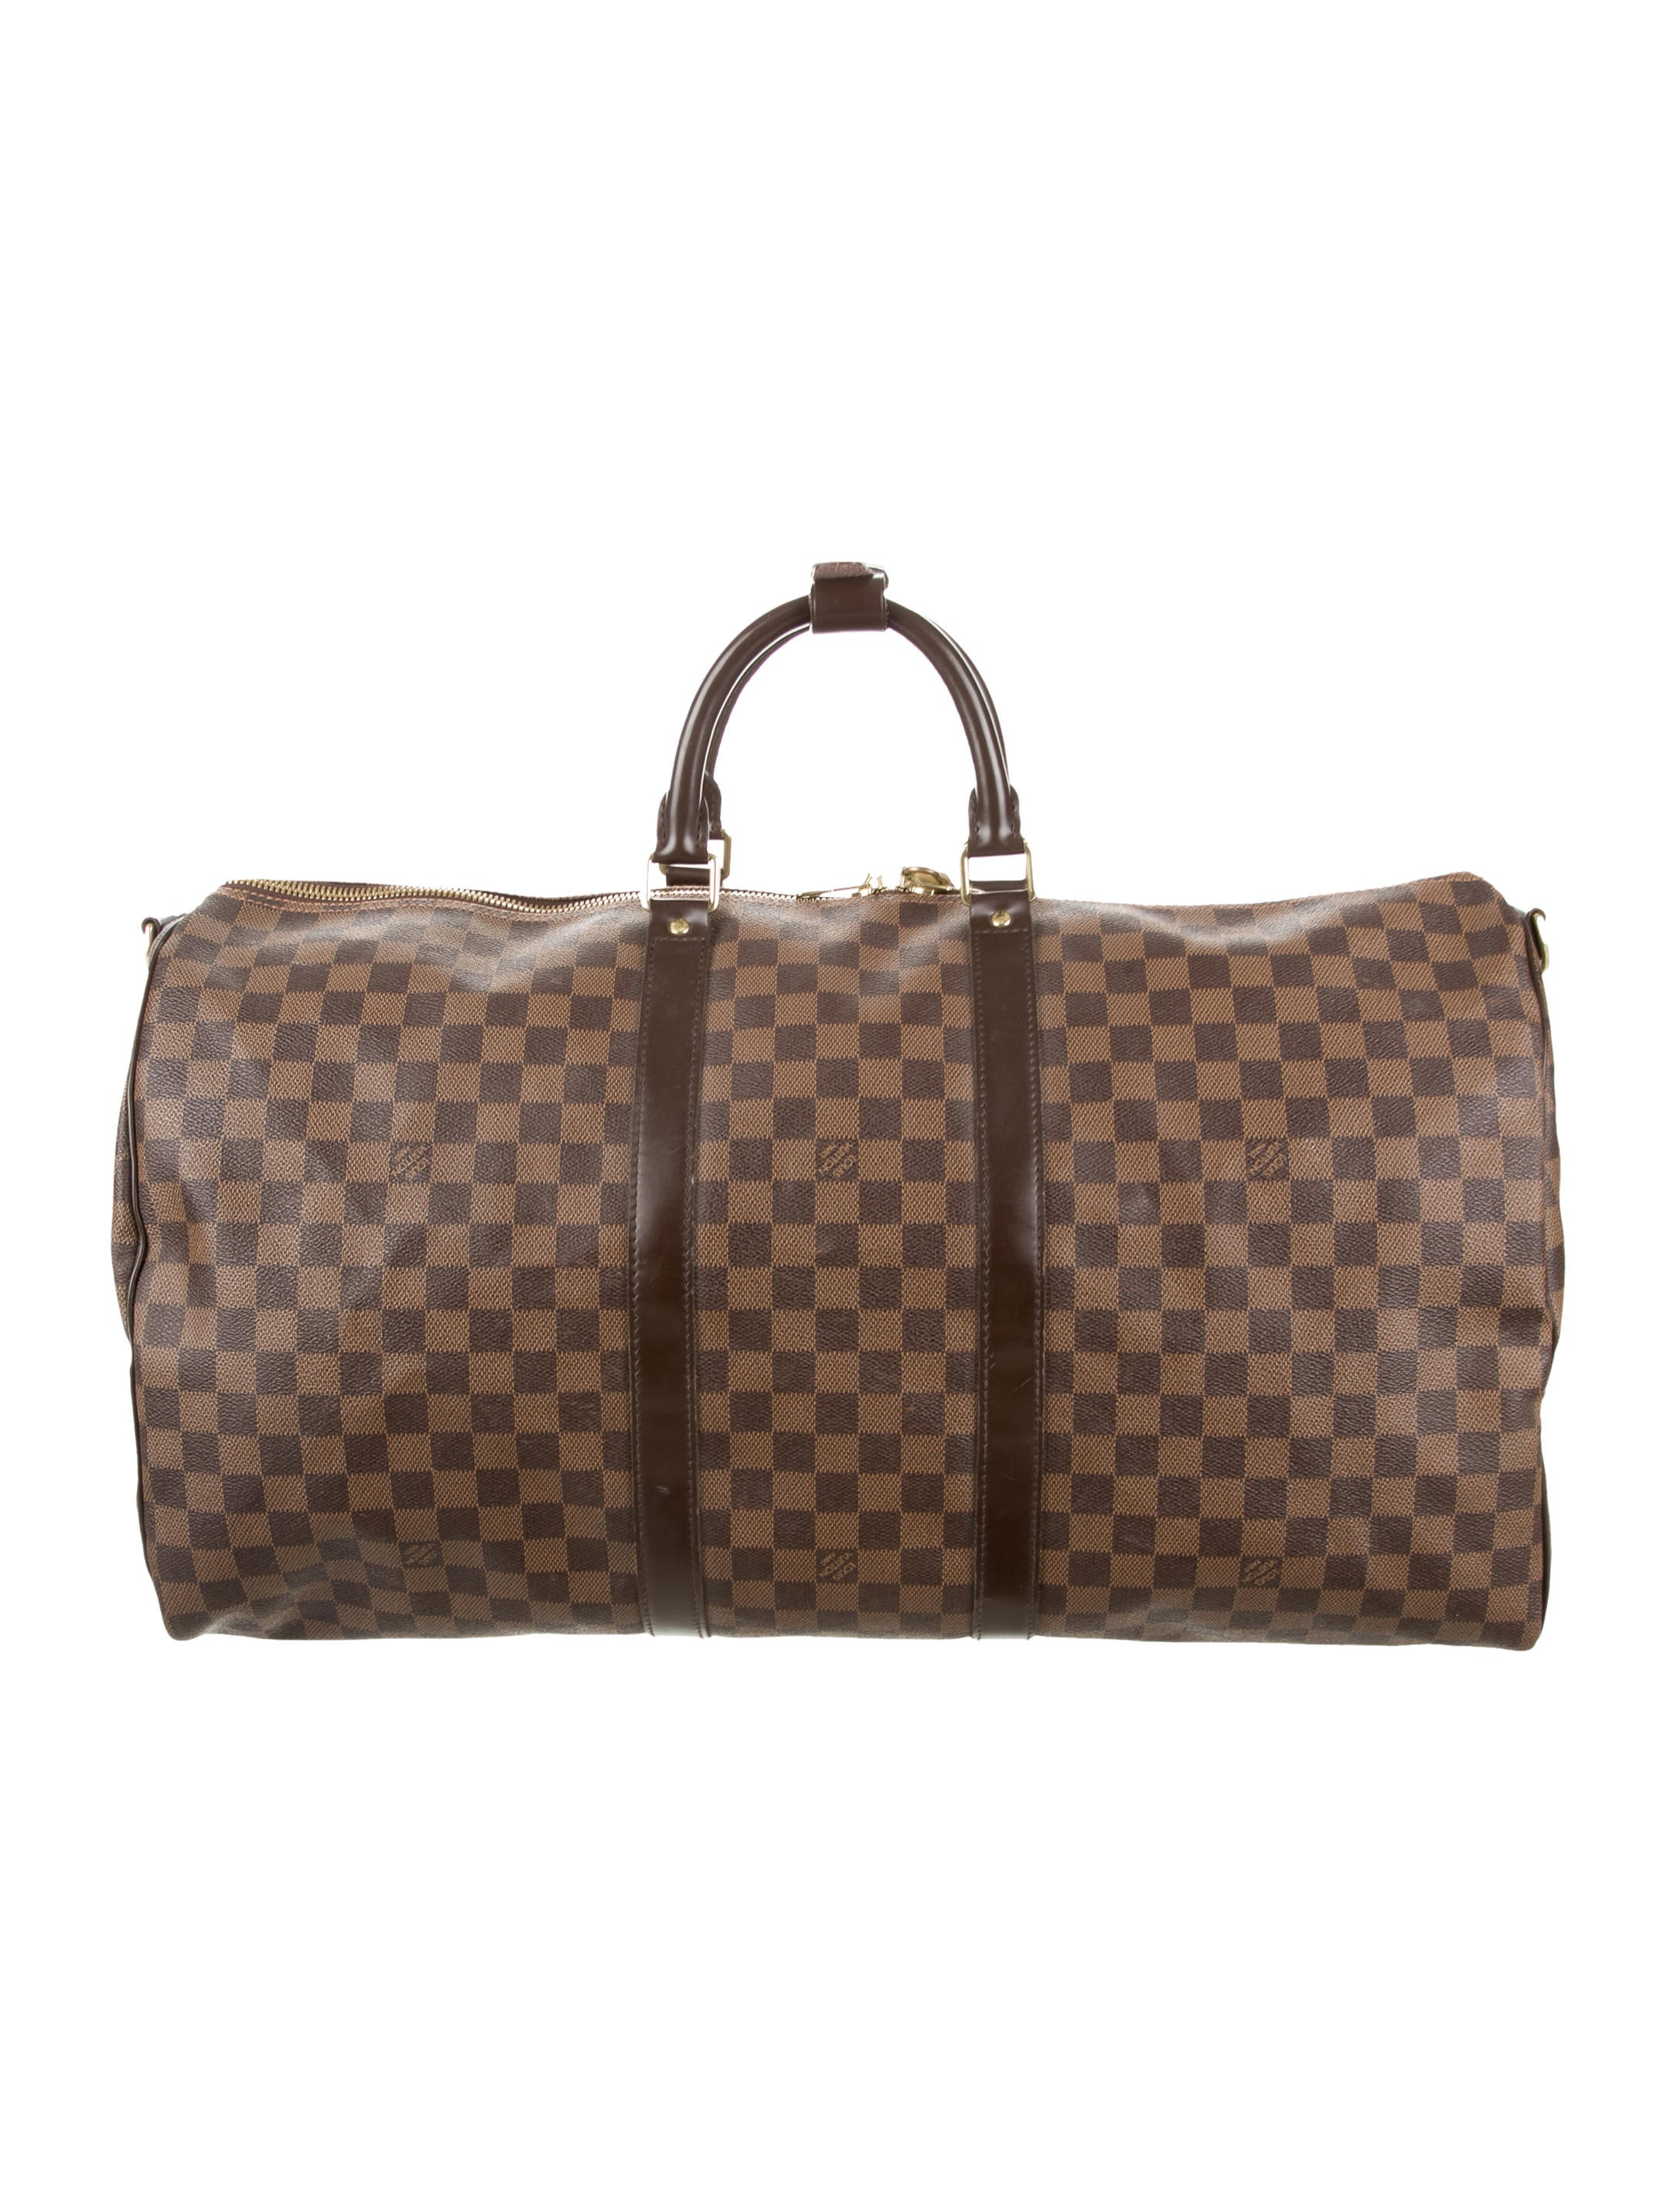 louis vuitton damier ebene keepall bandouli re 55 bags. Black Bedroom Furniture Sets. Home Design Ideas